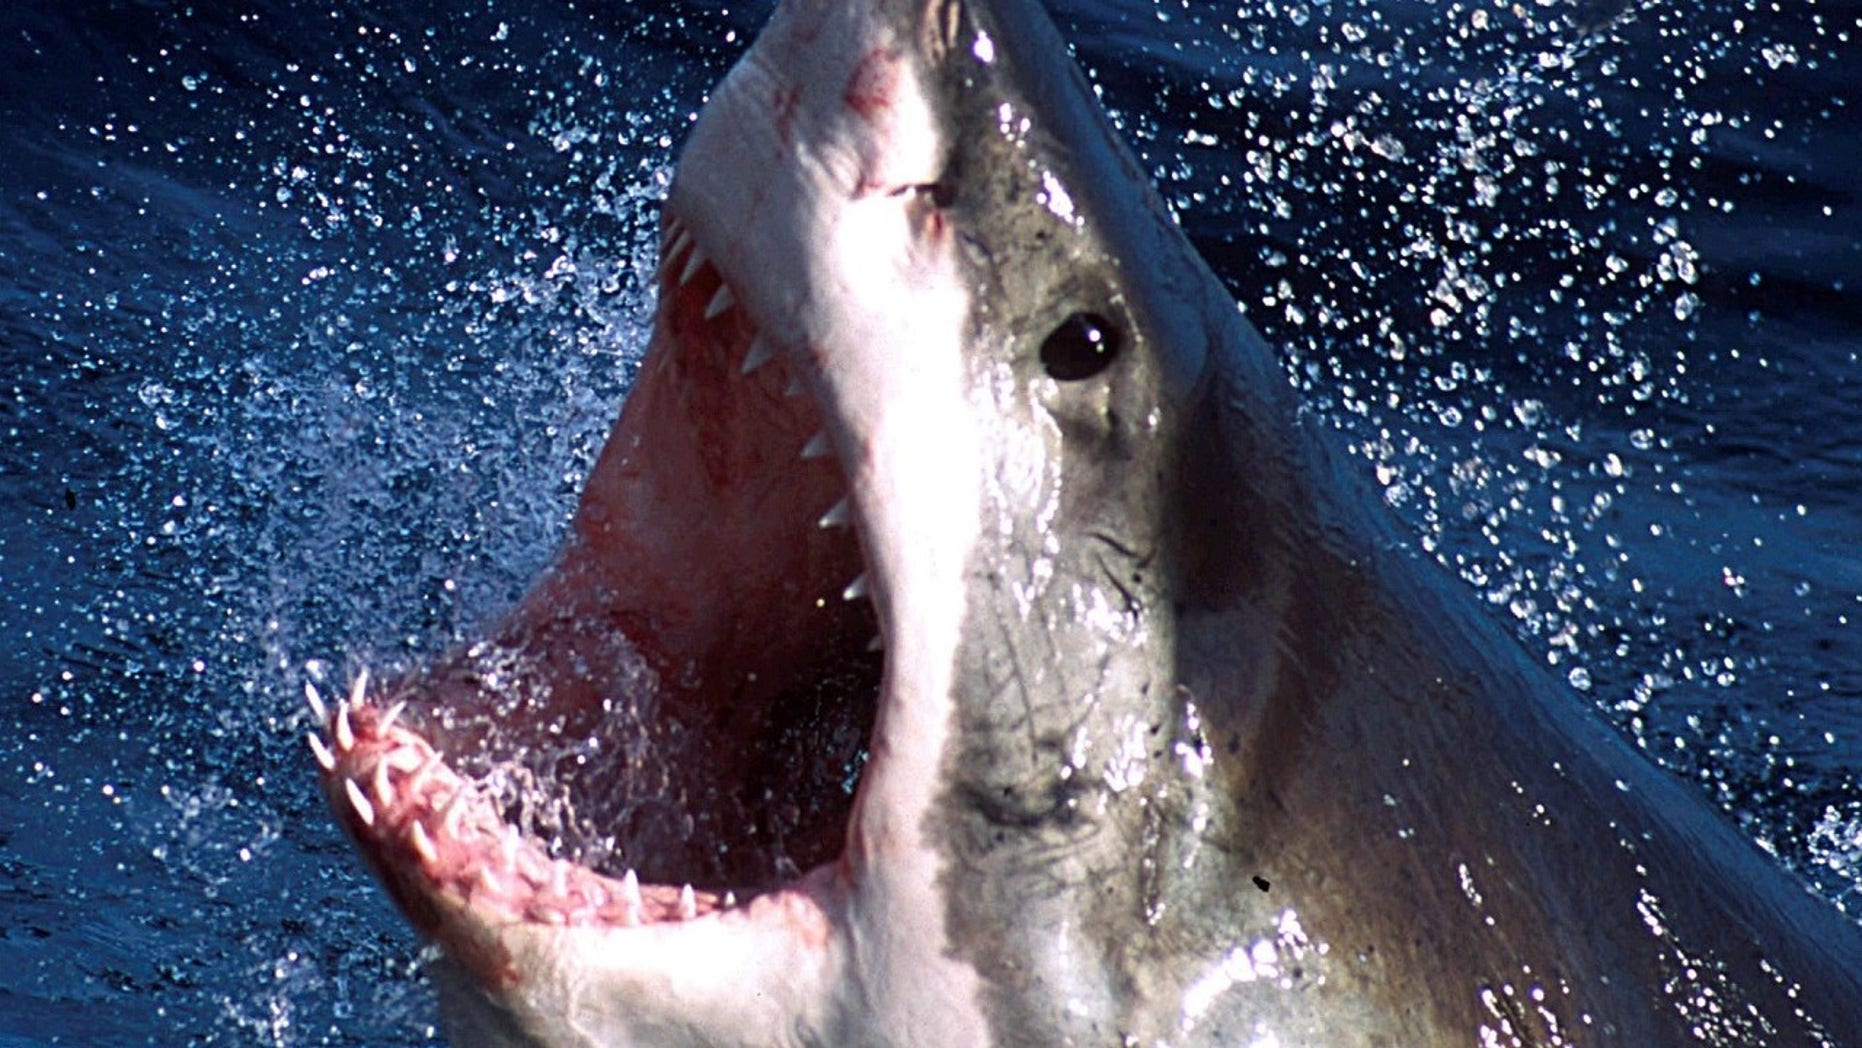 """A shark, believed to be a great white, attacked a teenage girl in Australia (not pictured). She described the moment as like a scene from """"Jaws."""""""